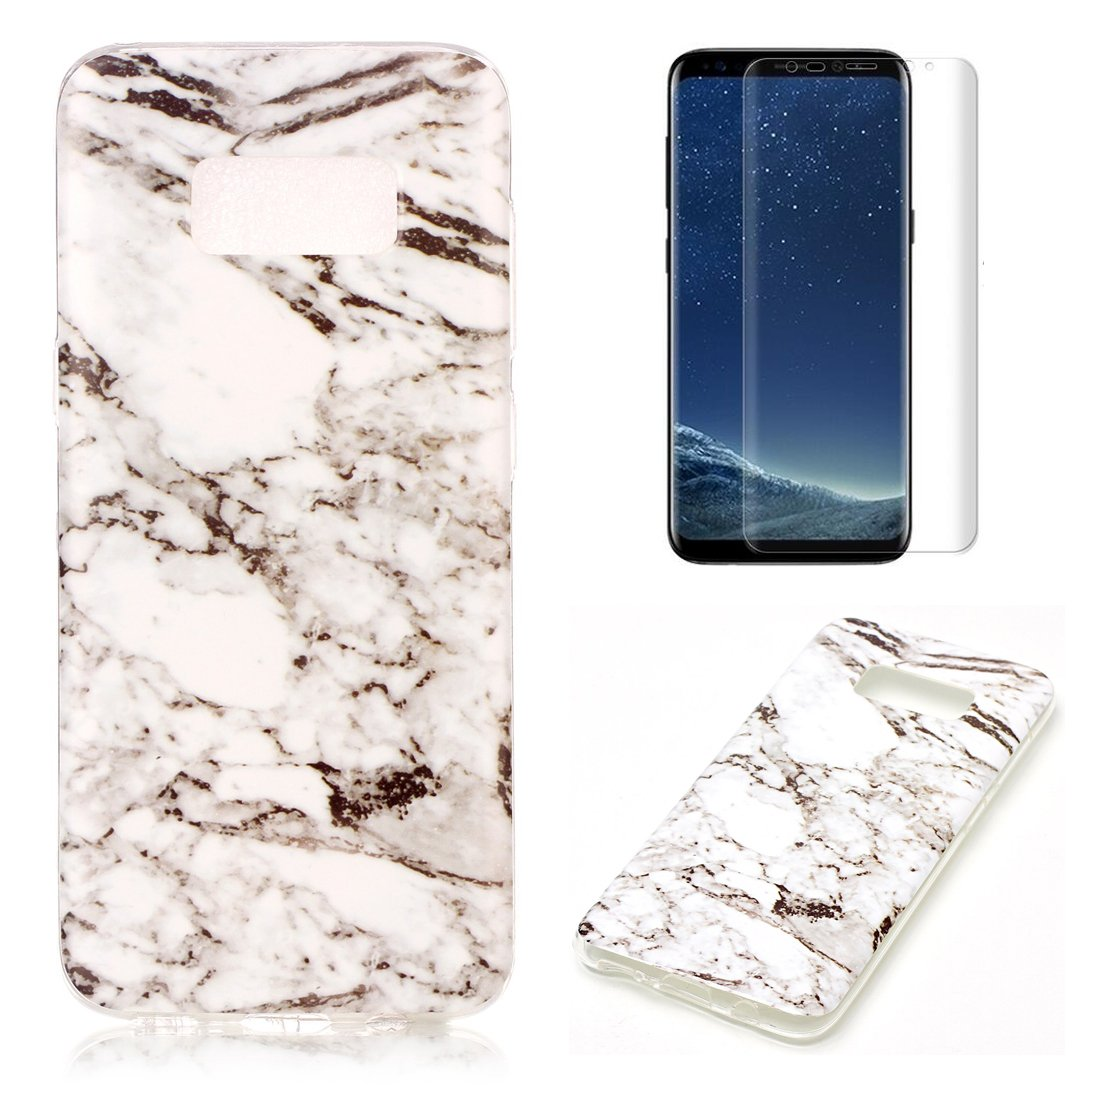 For Samsung Galaxy S8 Plus Marble Case Blue and Gray,OYIME Unique Luxury Glitter Colorful Plating Pattern Skin Design Clear Silicone Rubber Slim Fit Ultra Thin Protective Back Cover Glossy Soft Gel TPU Shell Shockproof Drop Protection Protective Transparen